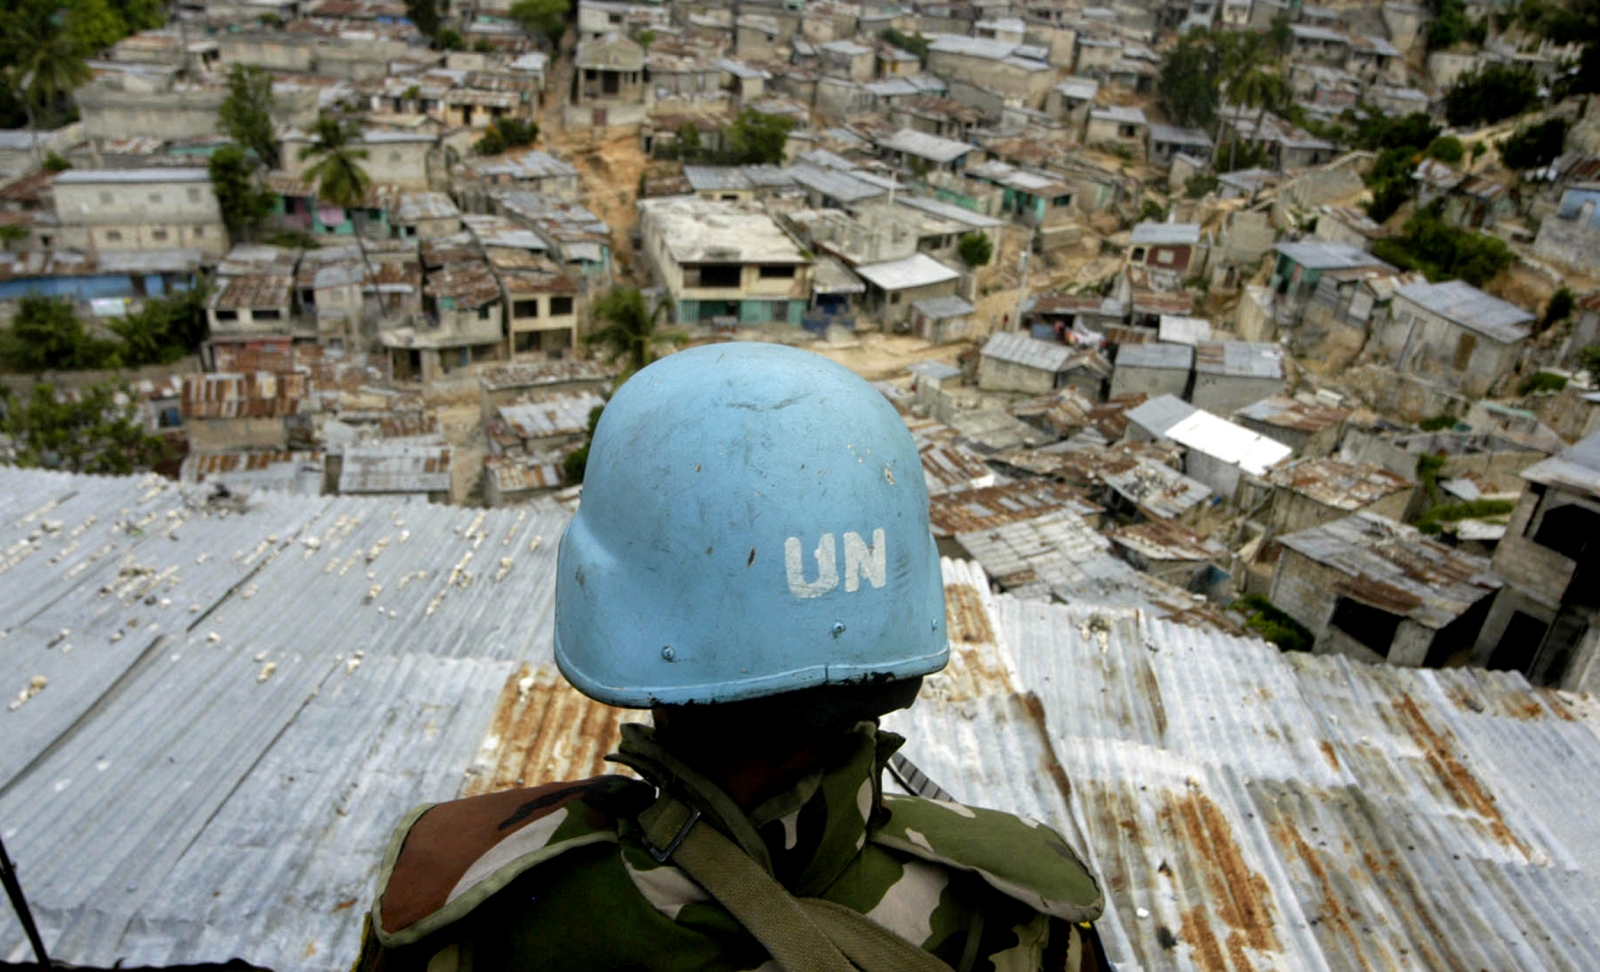 Drawdown of UN Mission Could Impact Organized Crime in Haiti